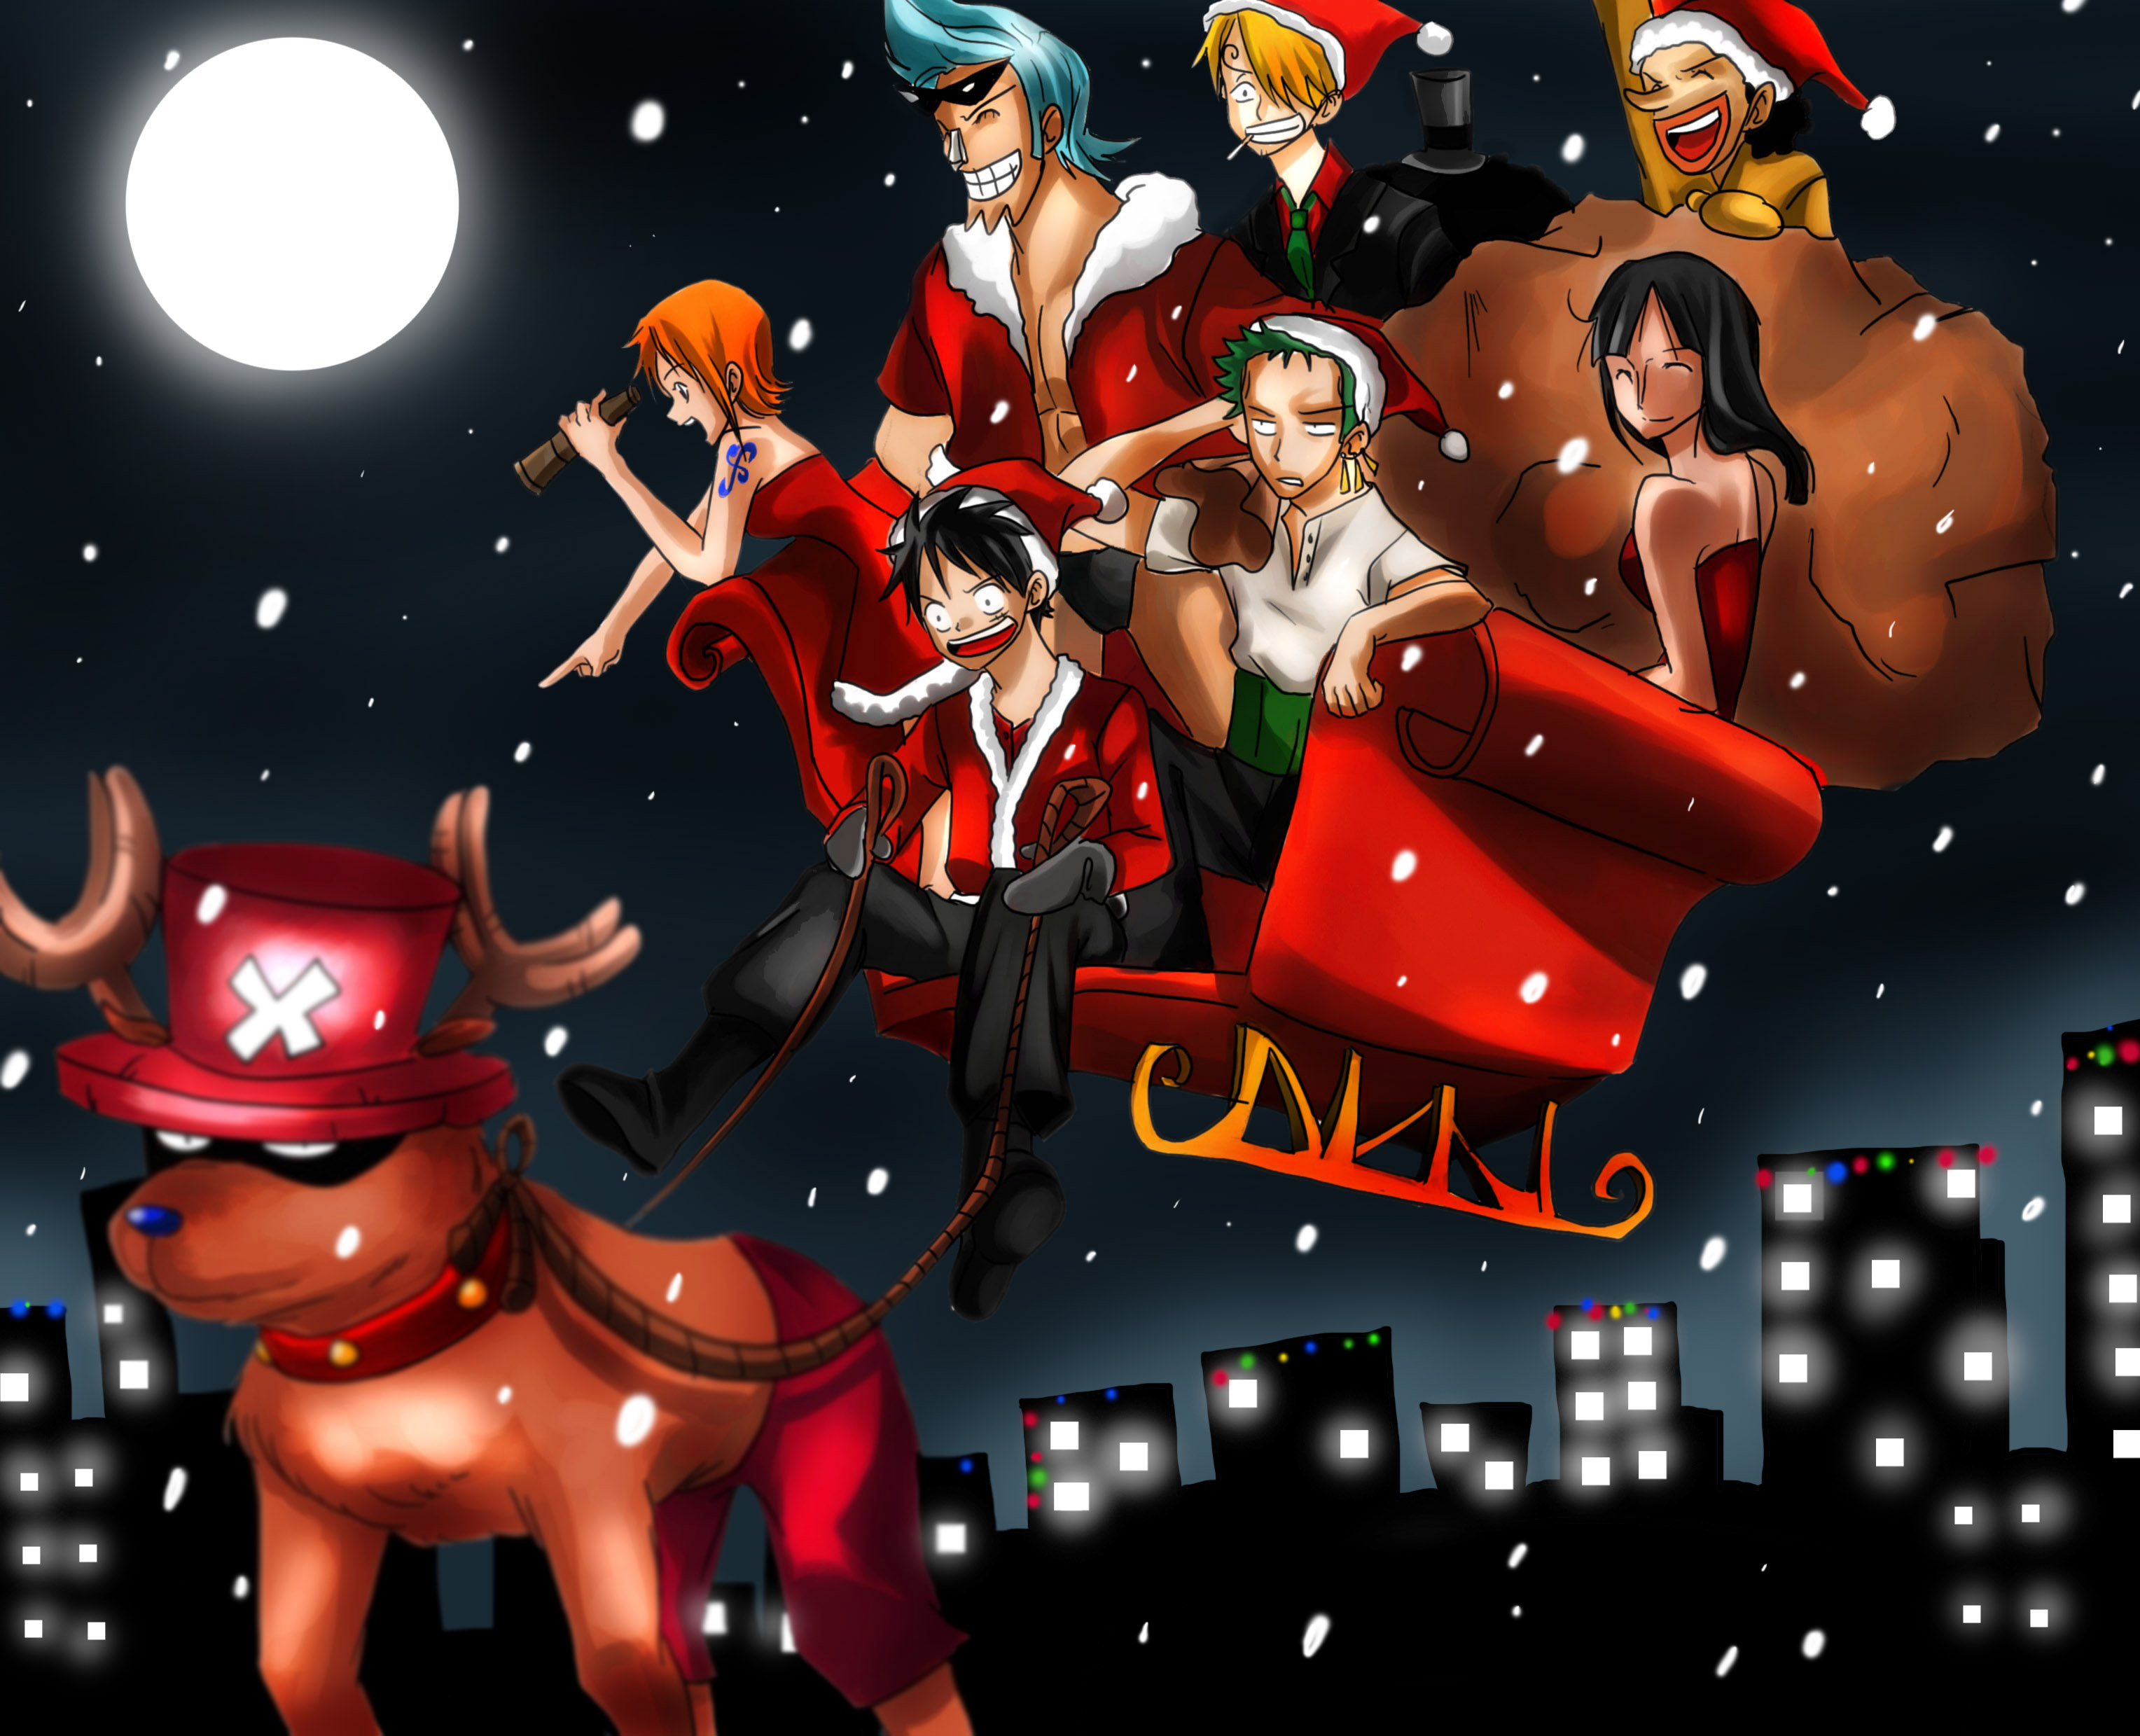 http://dailyanimeart.files.wordpress.com/2011/12/one_piece___merry_xmas_by_weirdalchemist.jpg